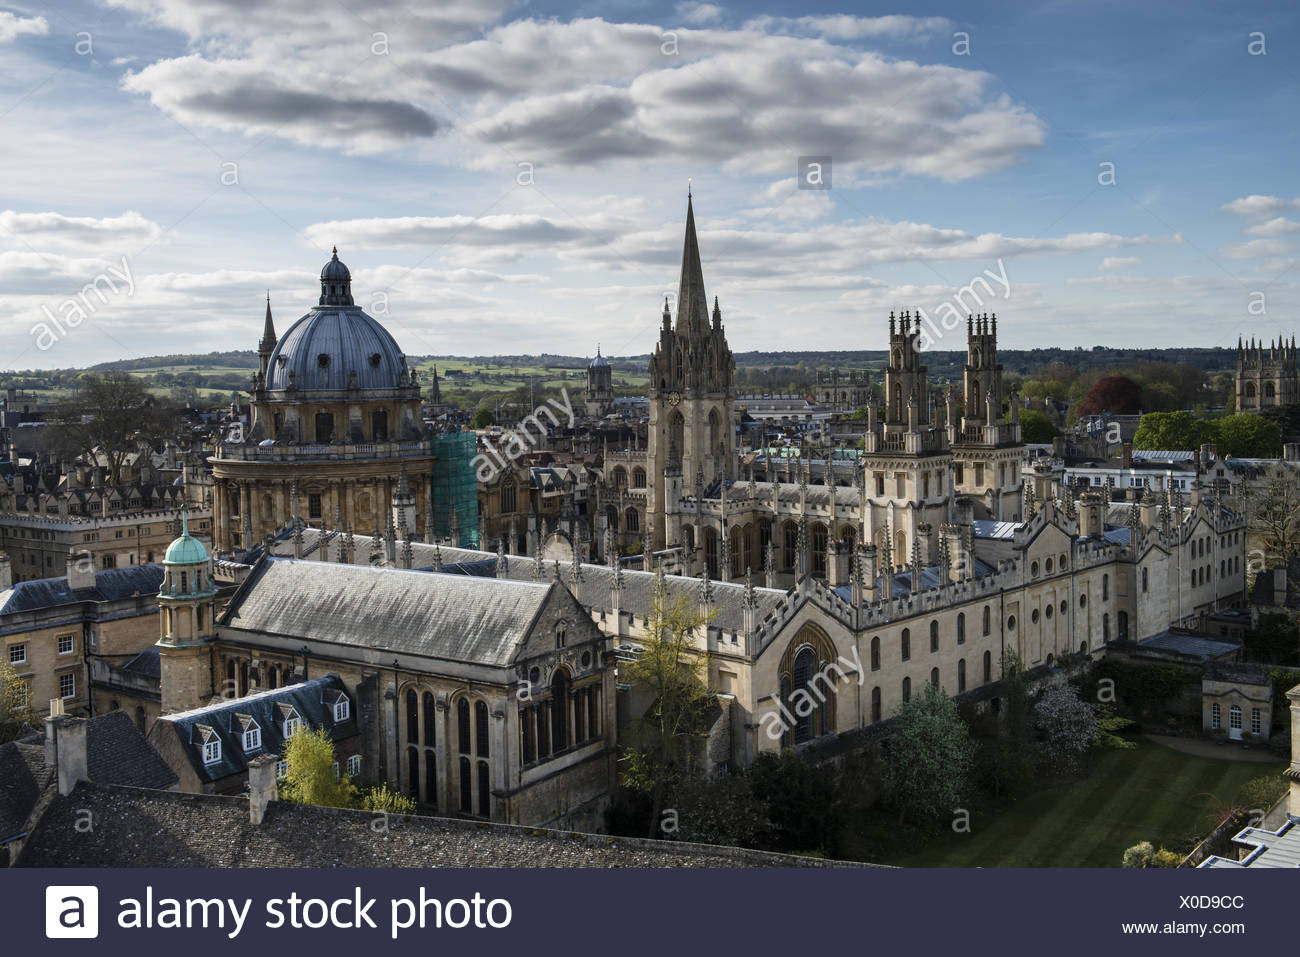 All Souls College with Radcliffs Camera - Stock Image